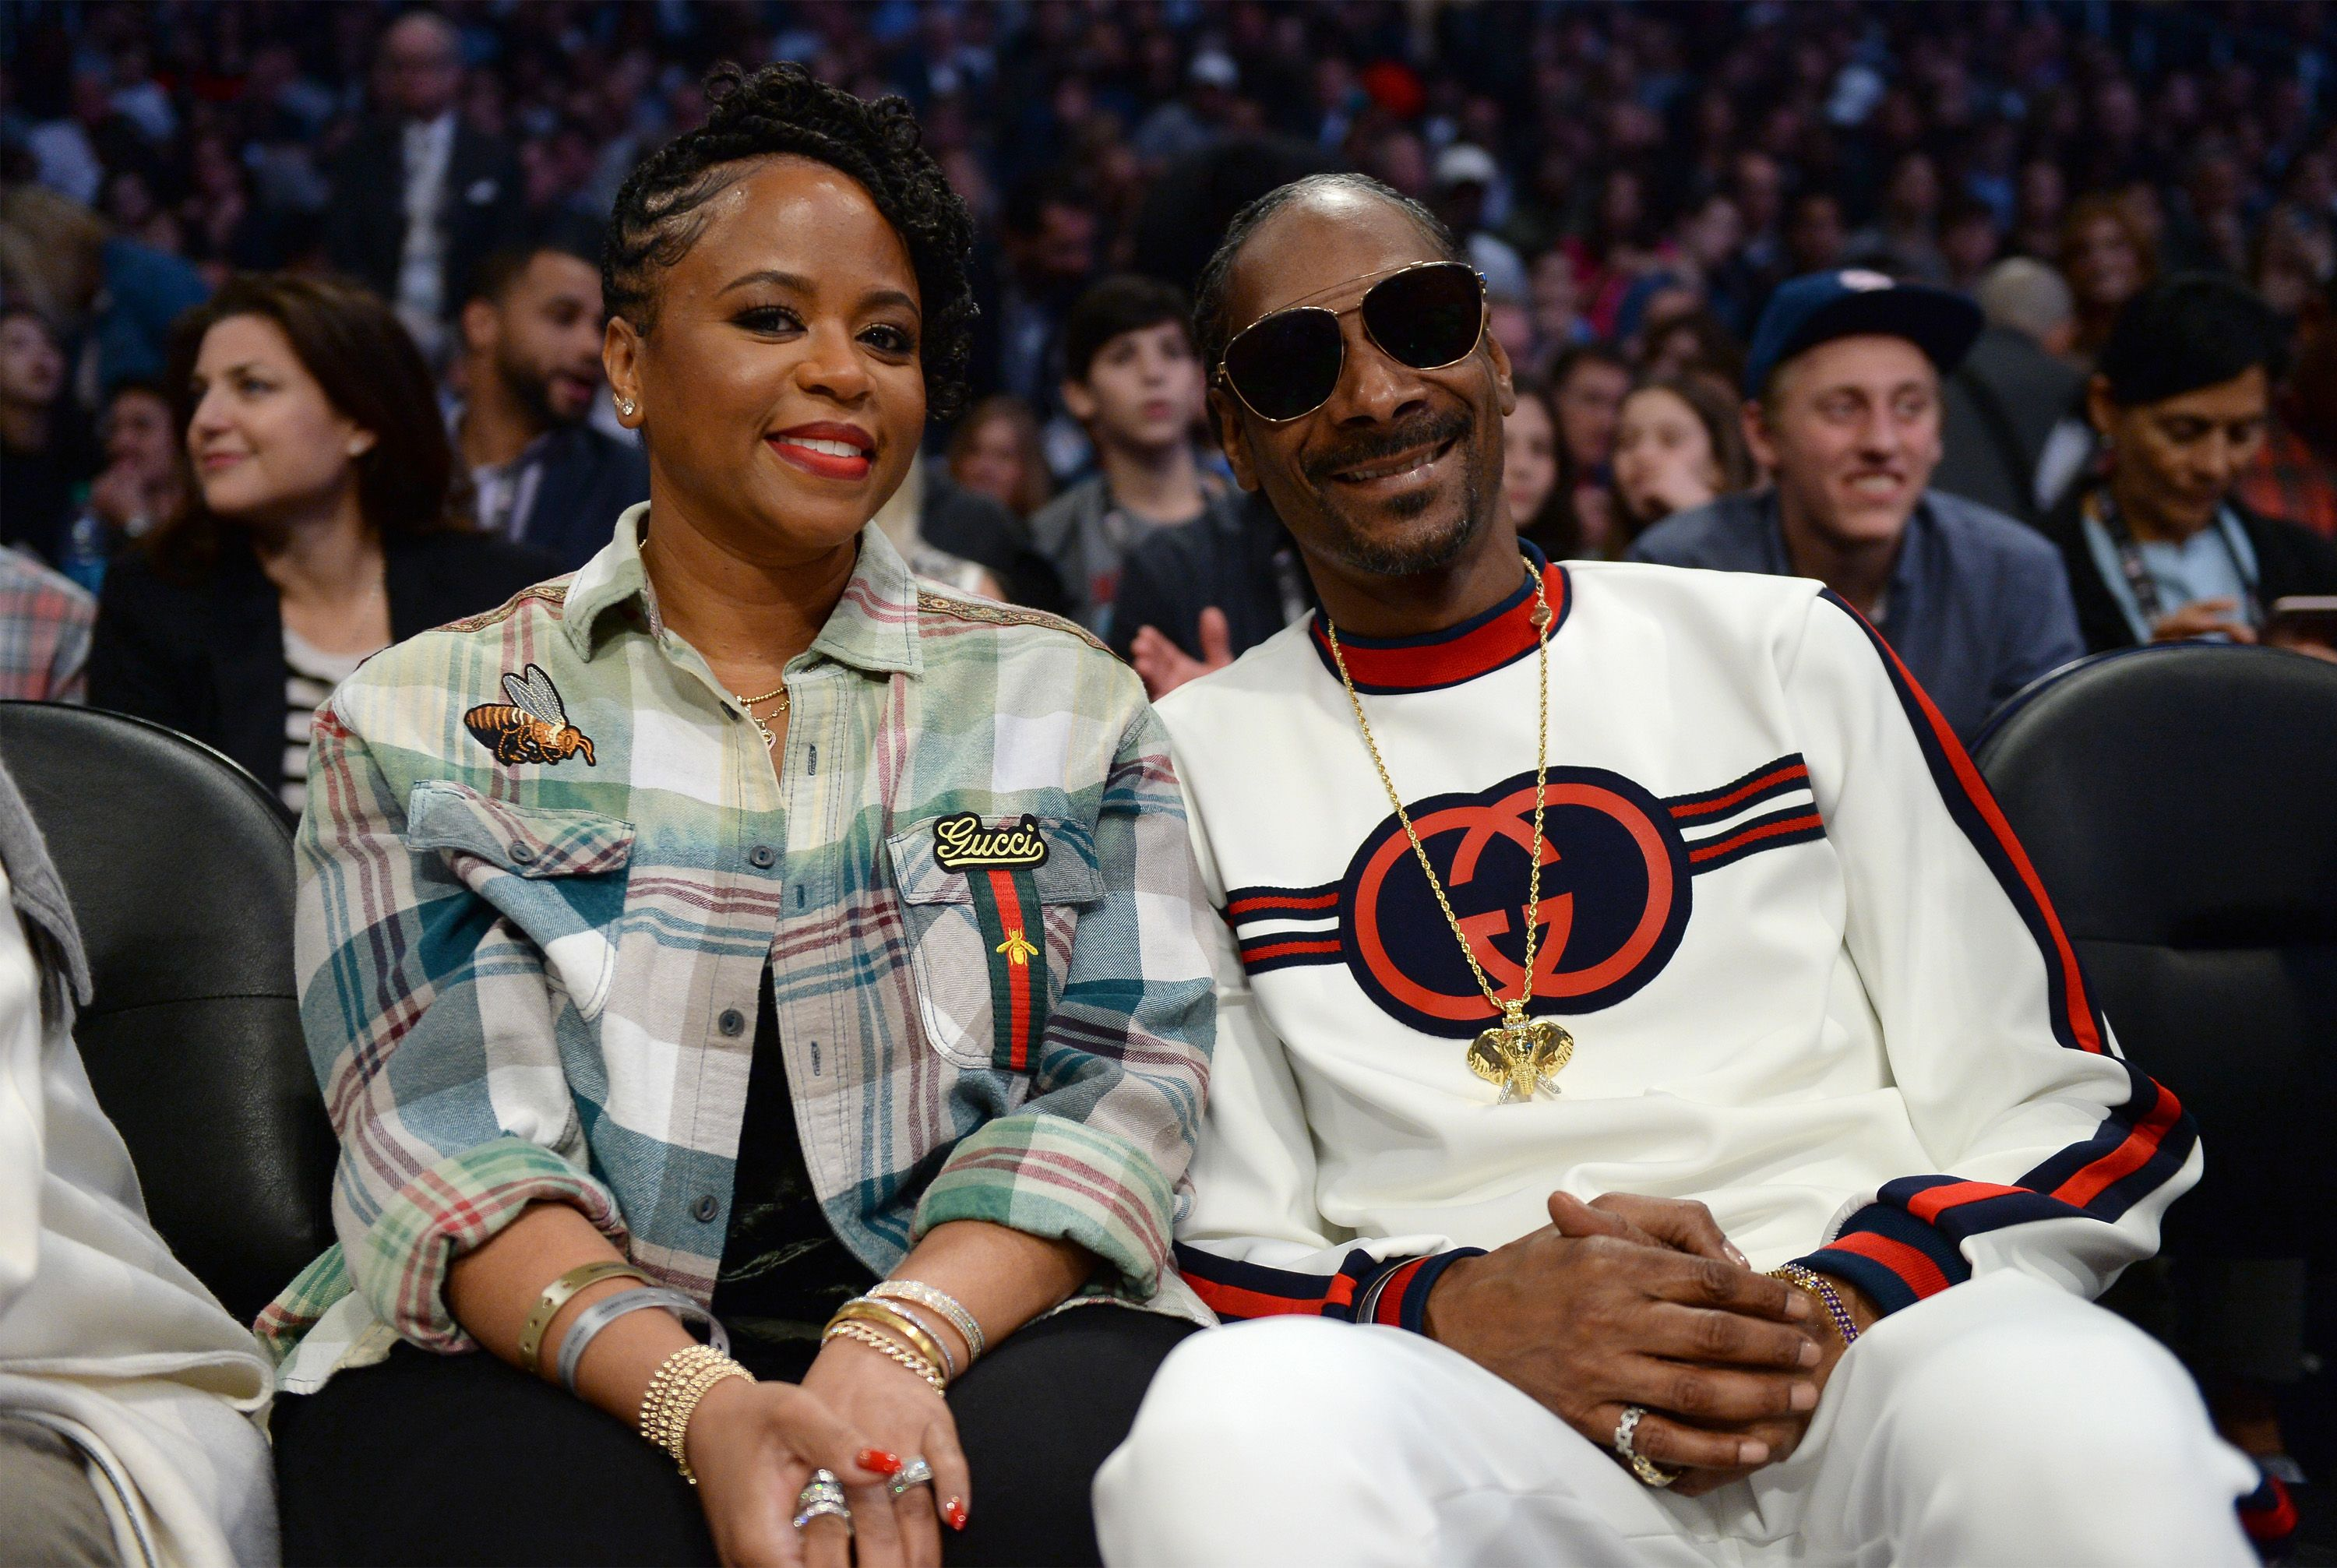 Snoop Dogg and Shante Broadus at the NBA game on February 18, 2018 in L.A. | Photo: Getty Images